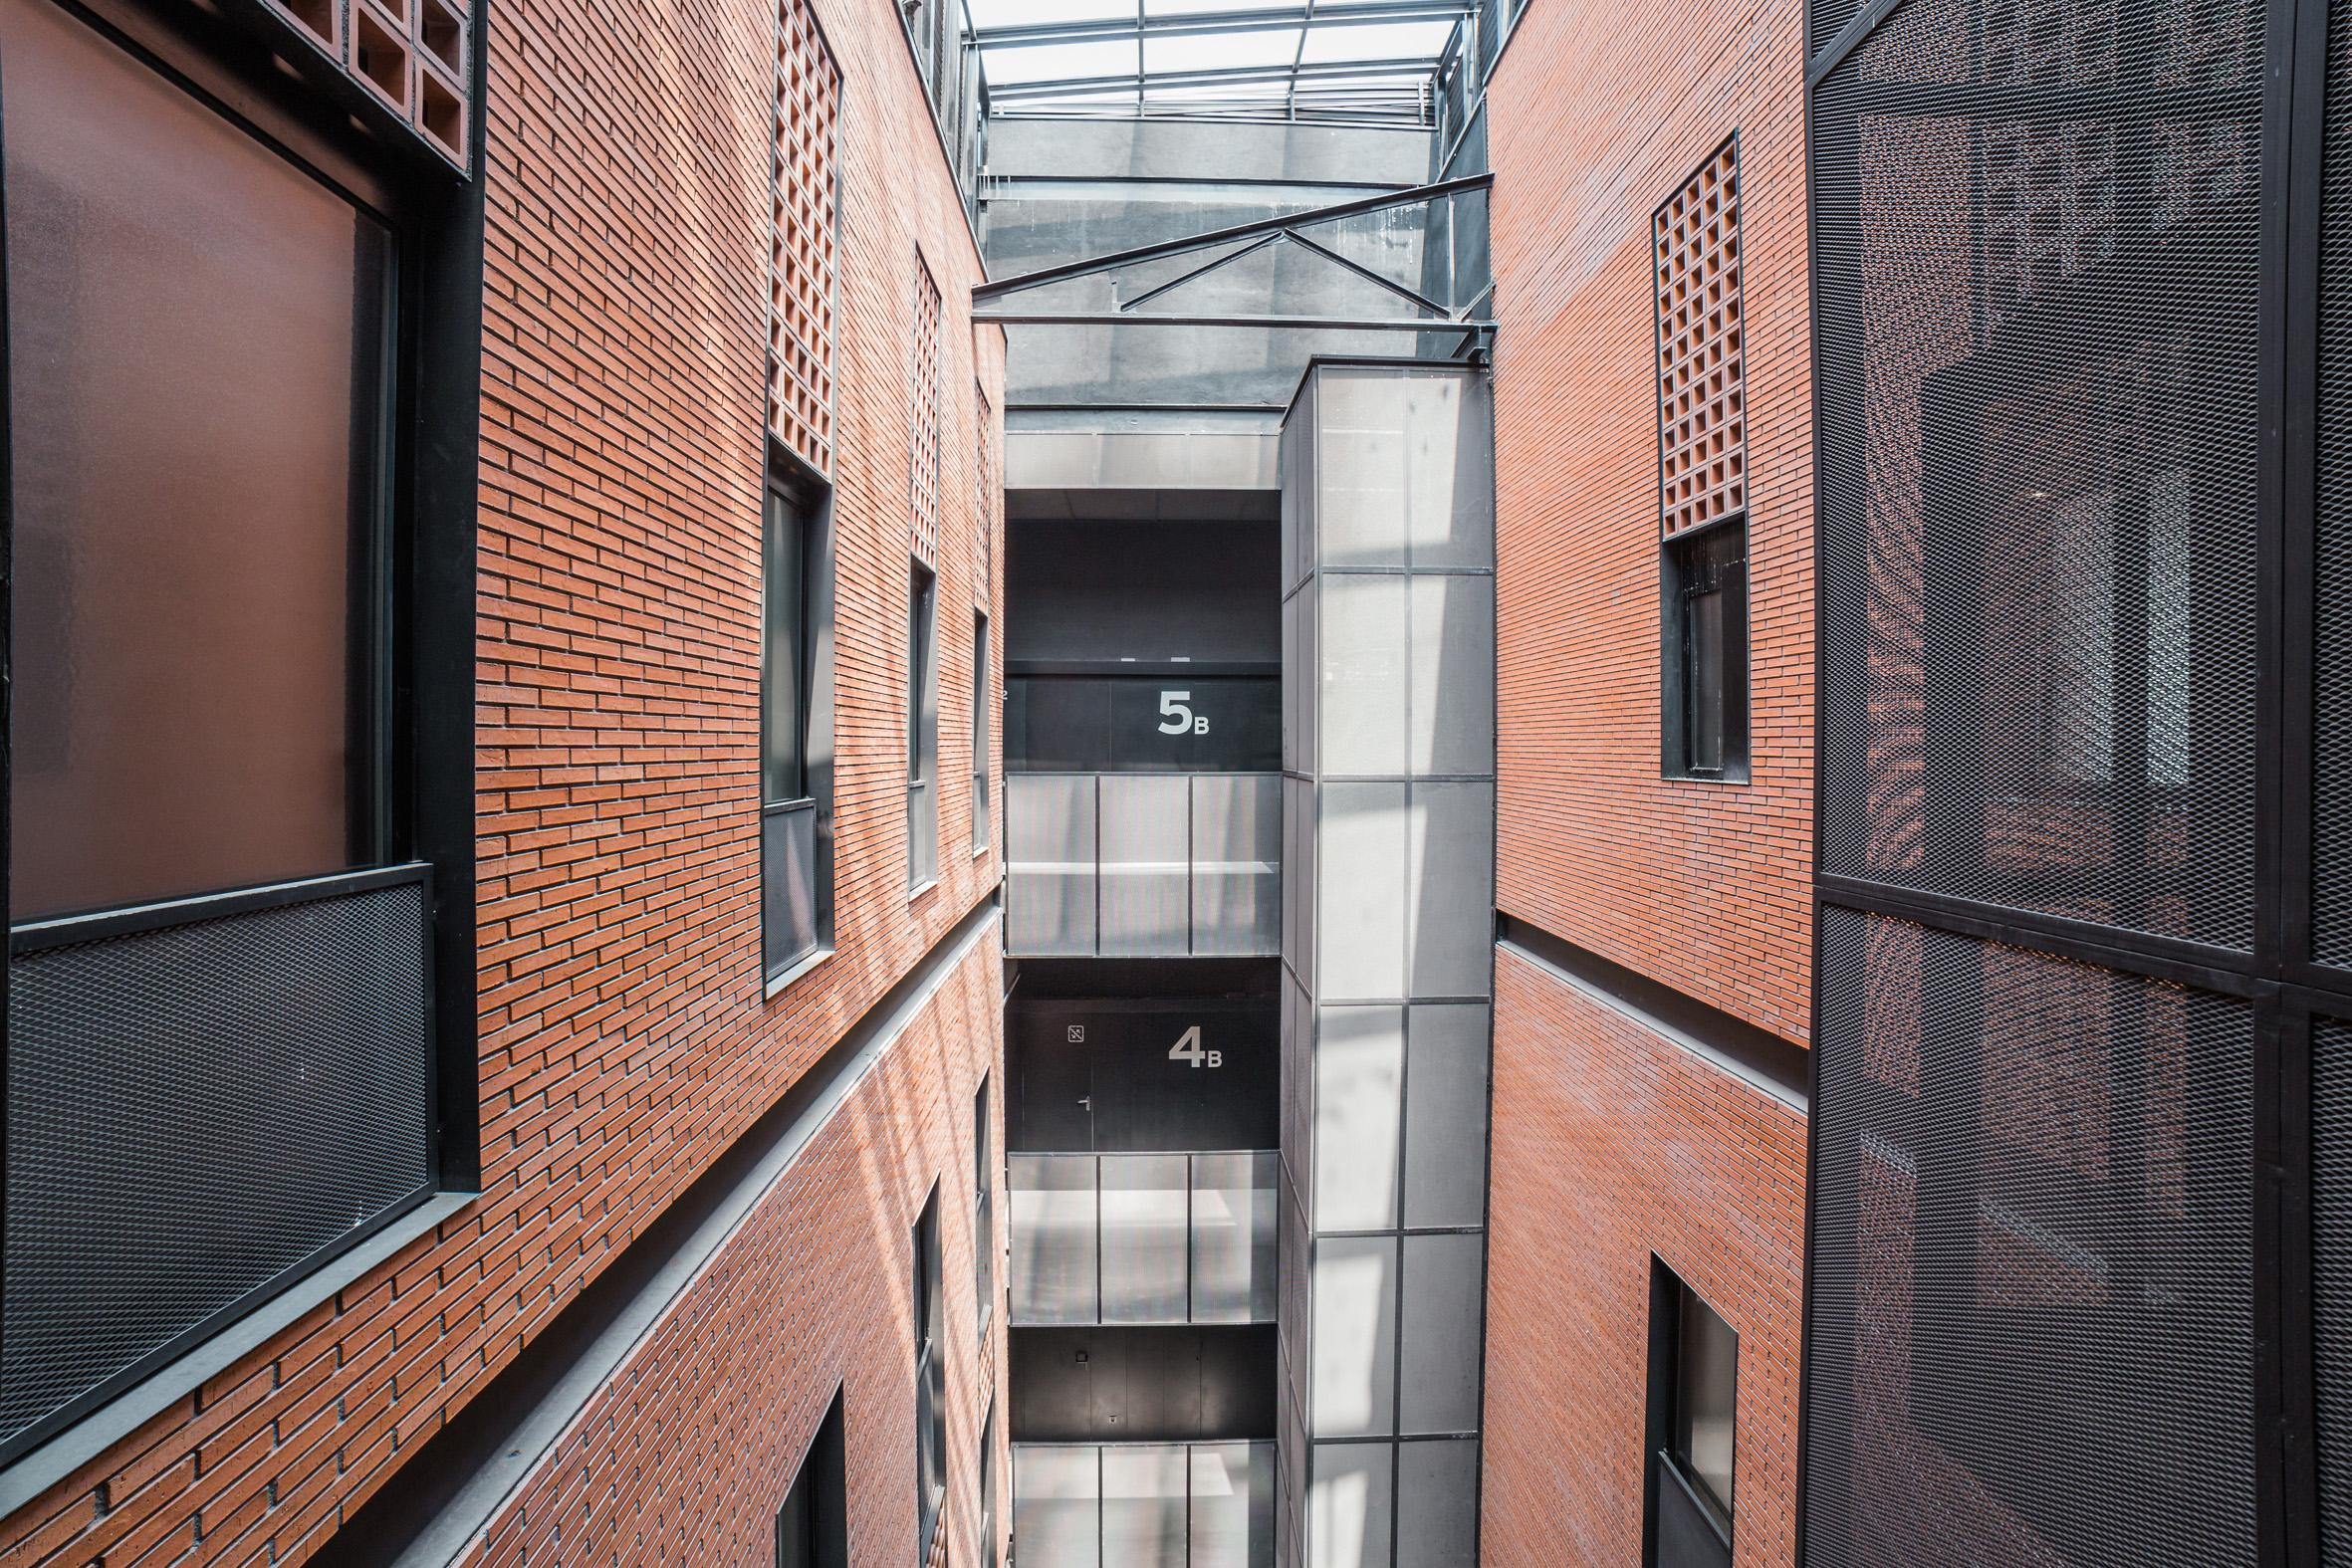 251675 Penthouse for sale in Les Corts, Les Corts 21